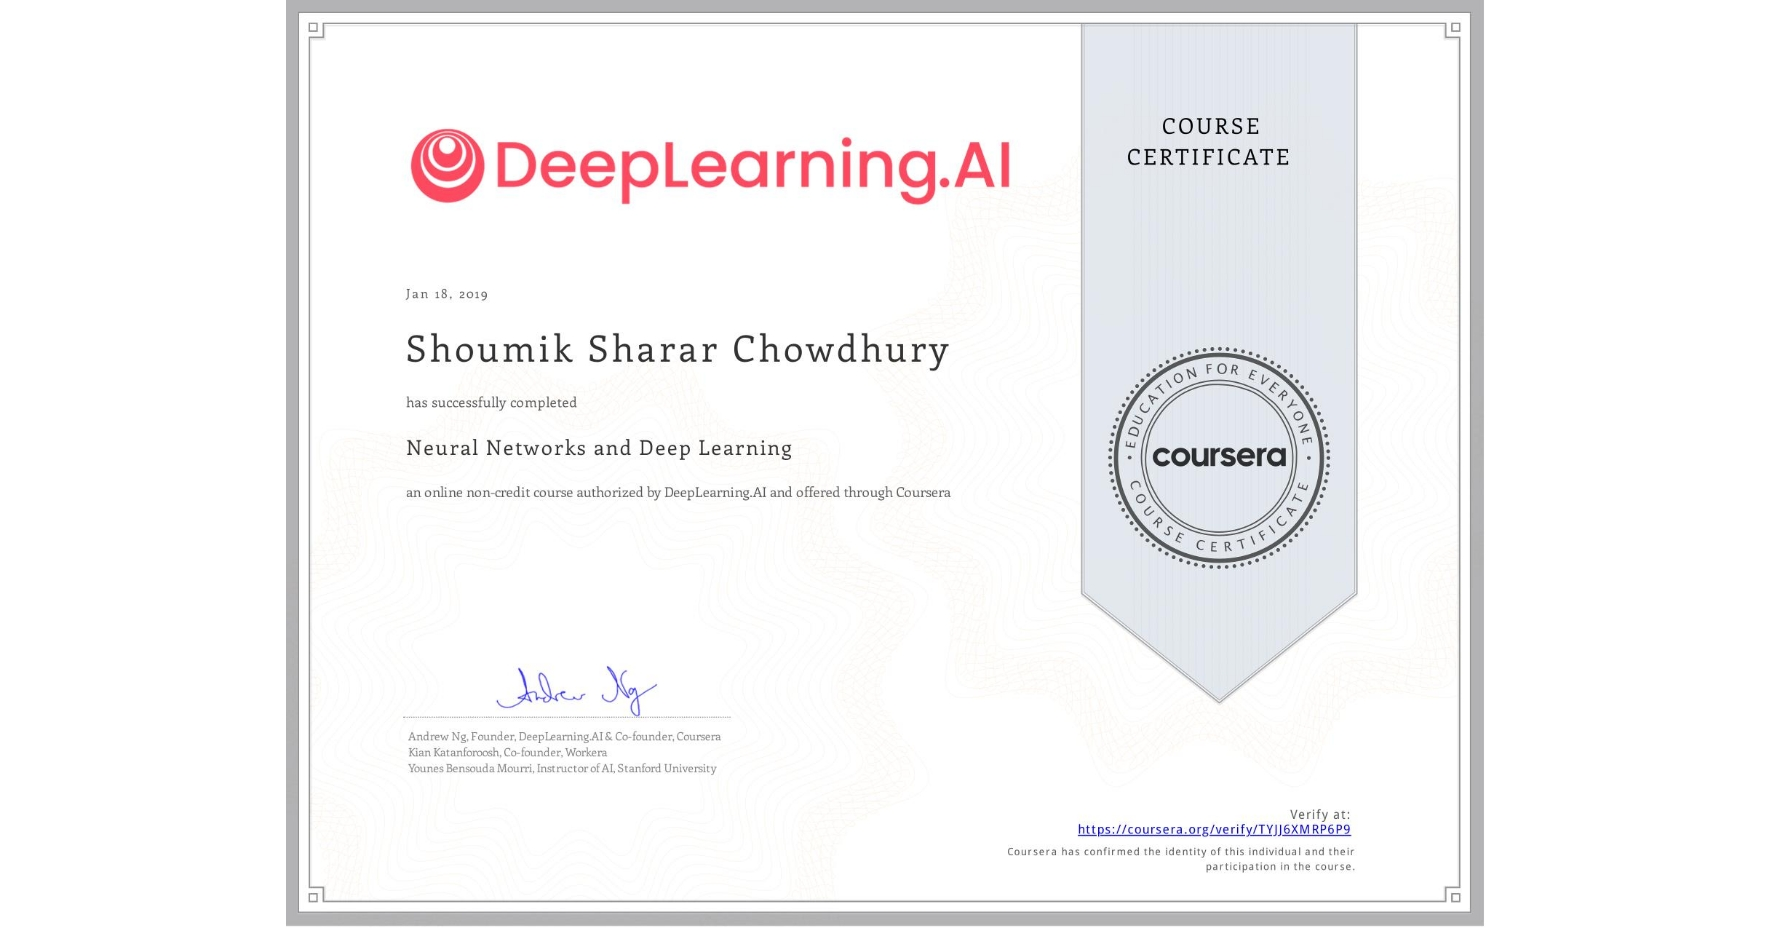 View certificate for Shoumik Sharar Chowdhury, Neural Networks and Deep Learning, an online non-credit course authorized by DeepLearning.AI and offered through Coursera